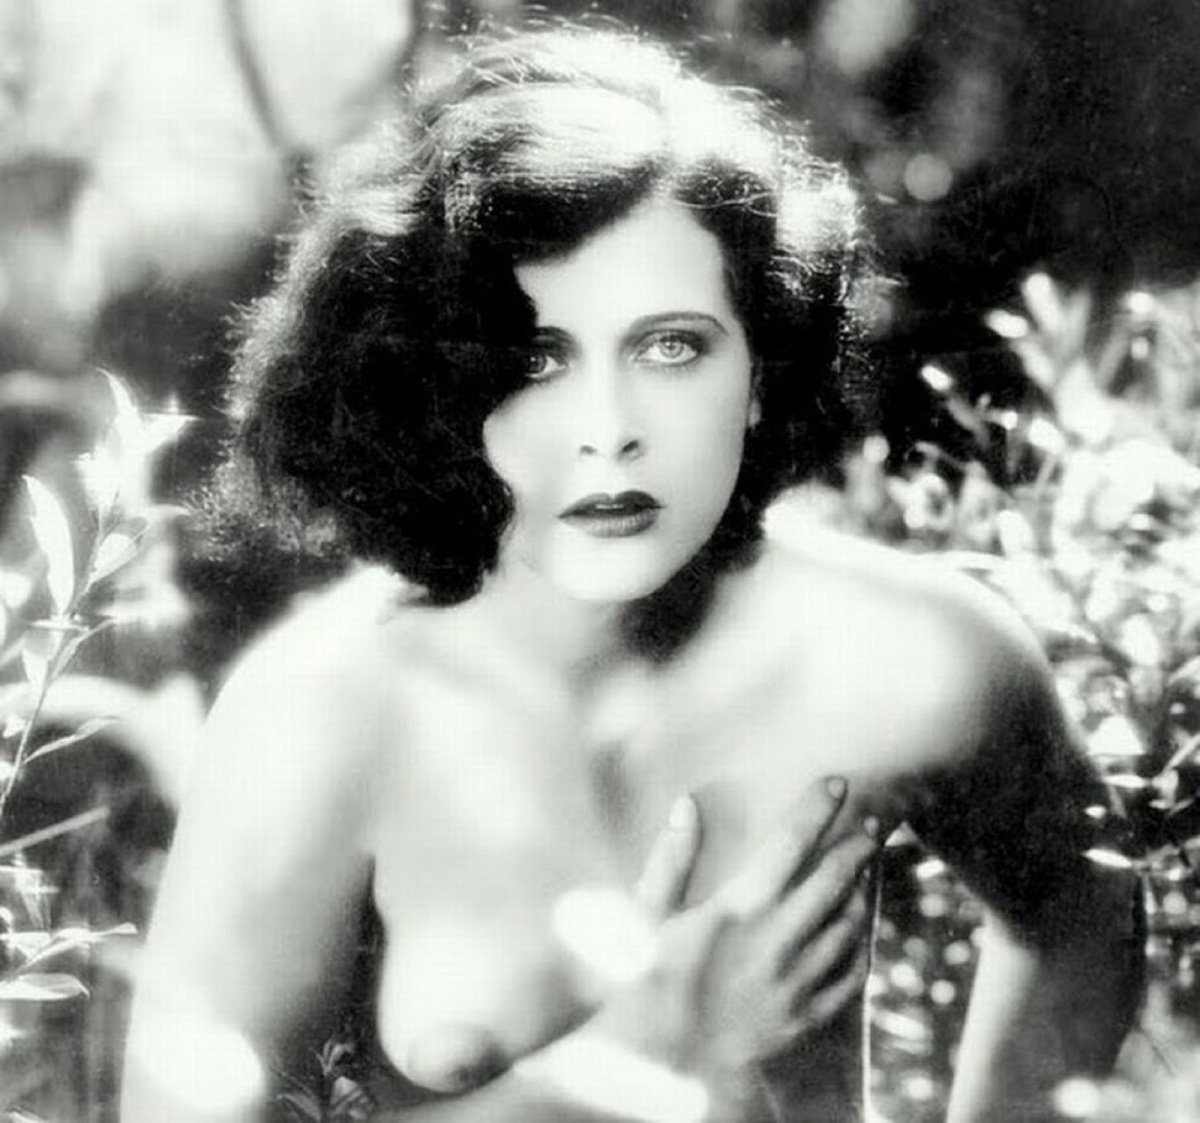 http://sparidinchiostro.files.wordpress.com/2013/10/hedylamarr.jpg?w=1200